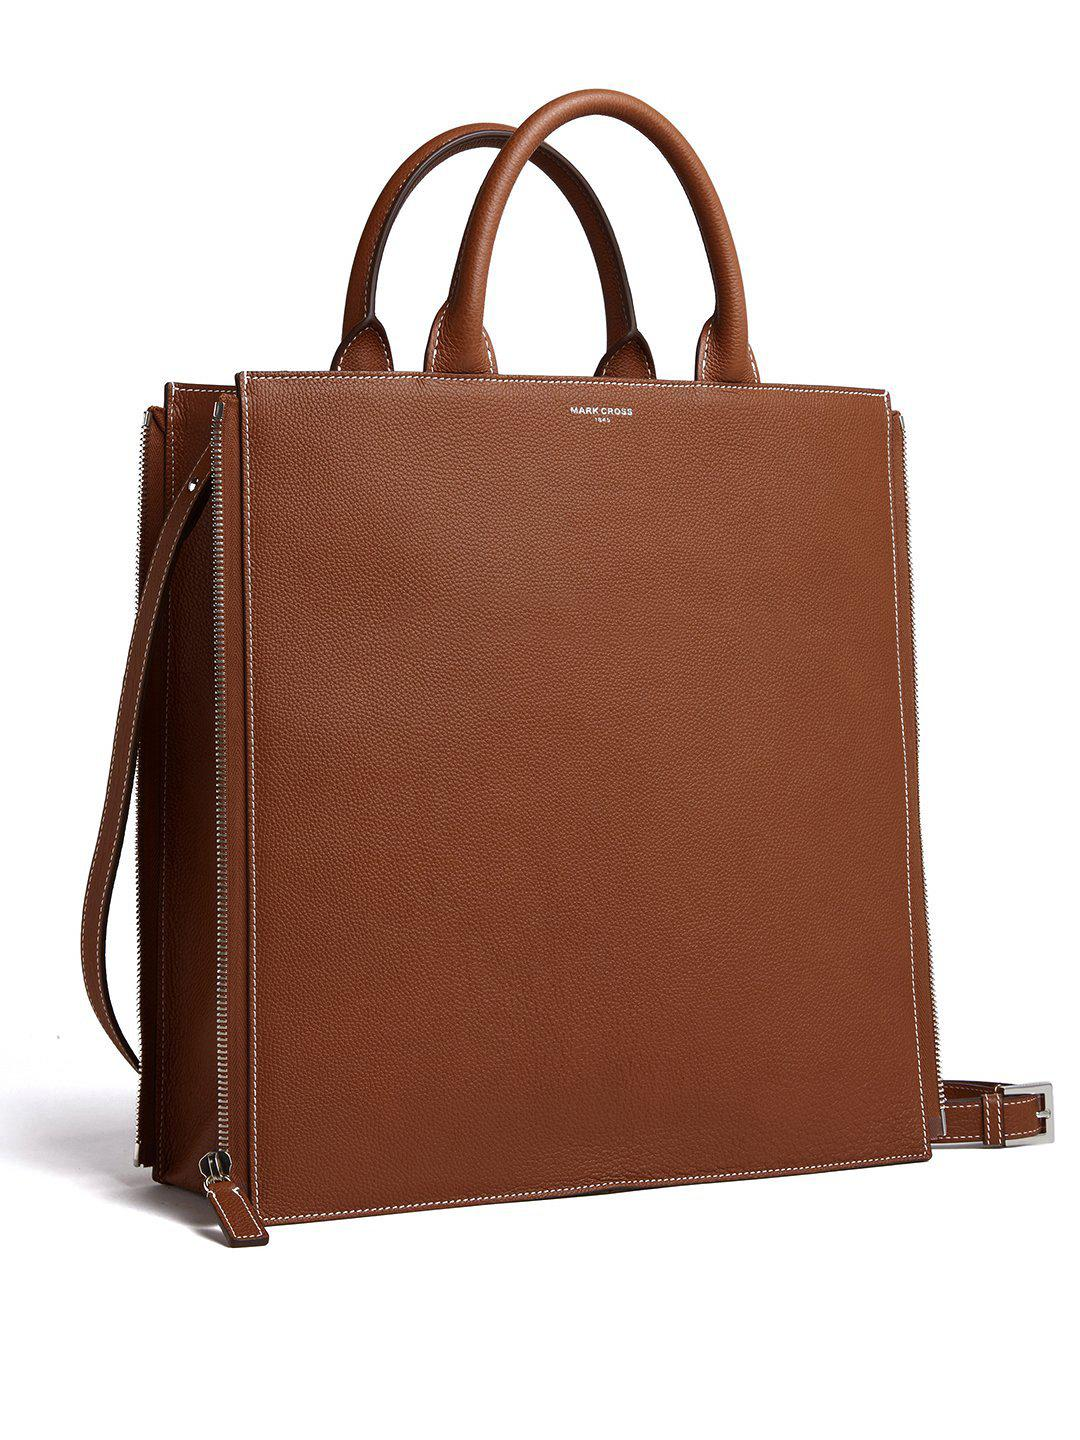 Sidney Leather Tote Bag 3